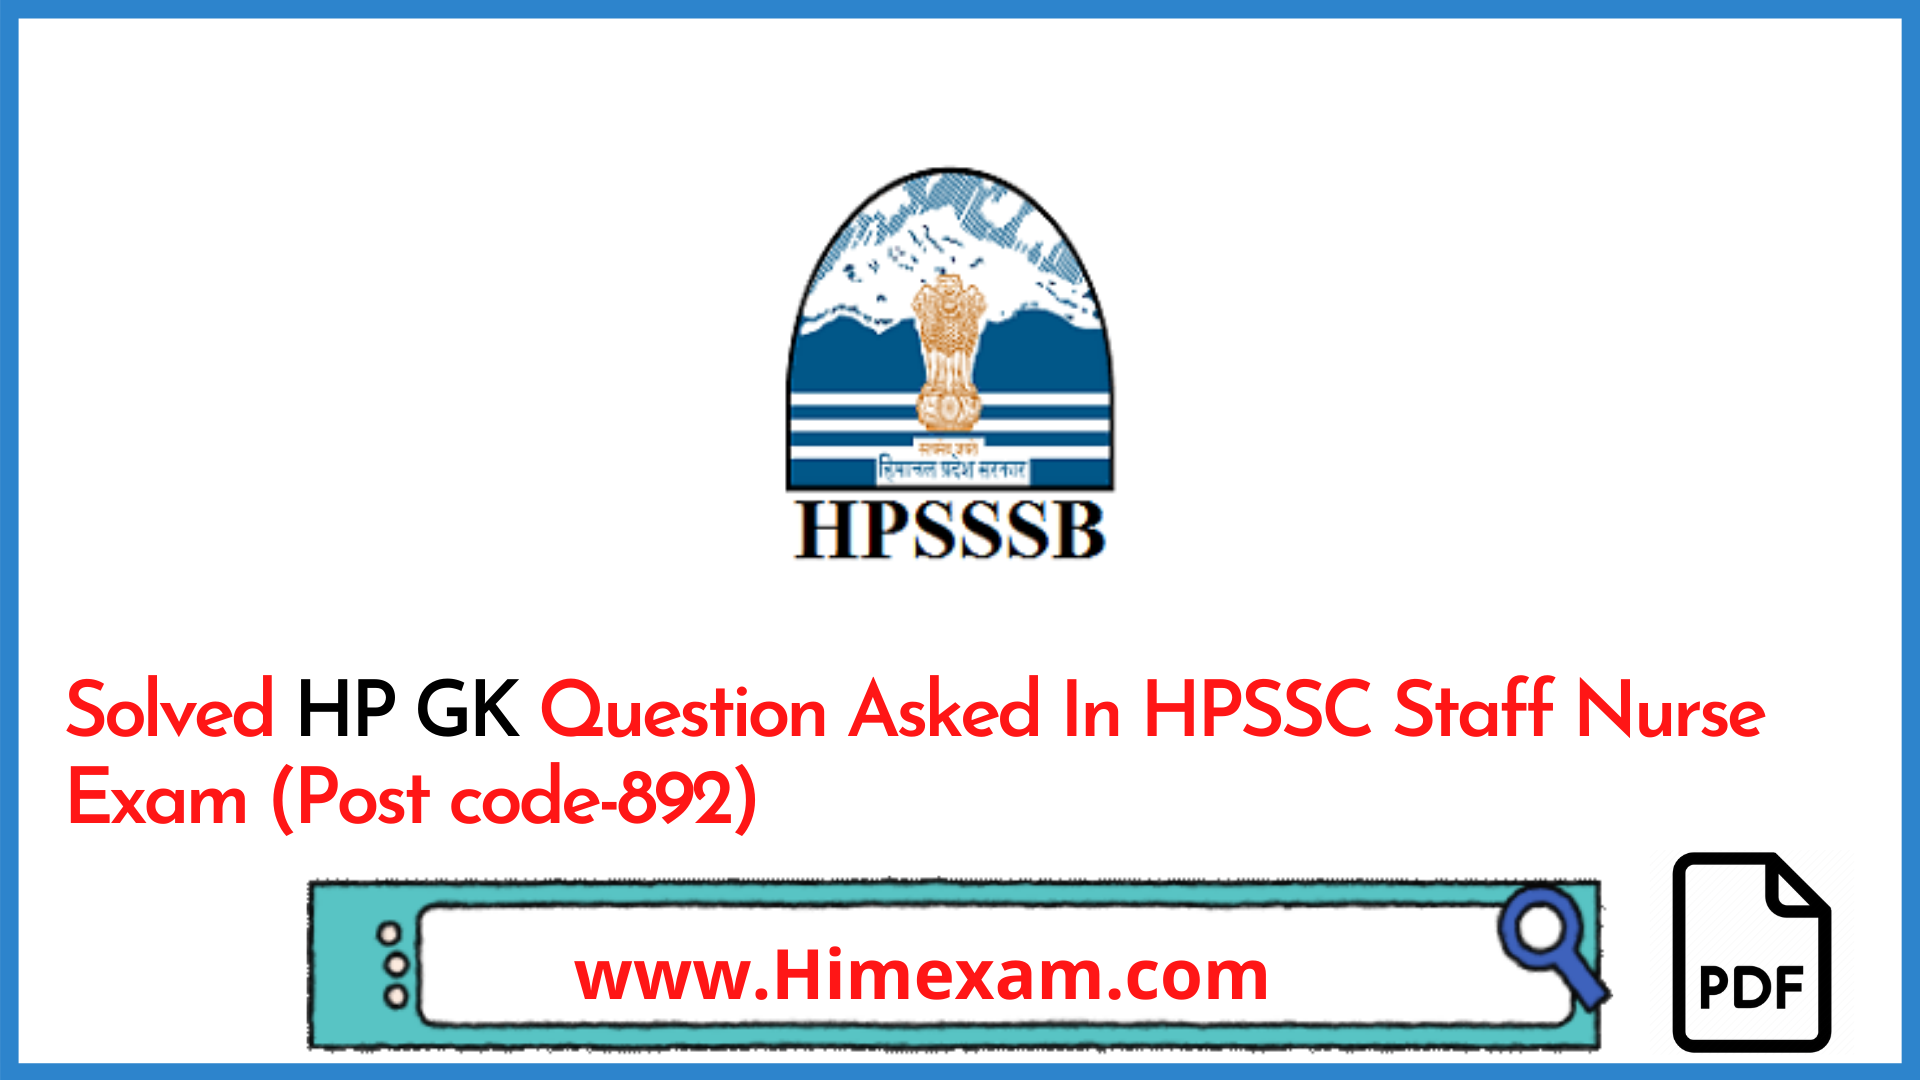 Solved HP GK Question Asked In HPSSC Staff Nurse Exam (Post code-892)